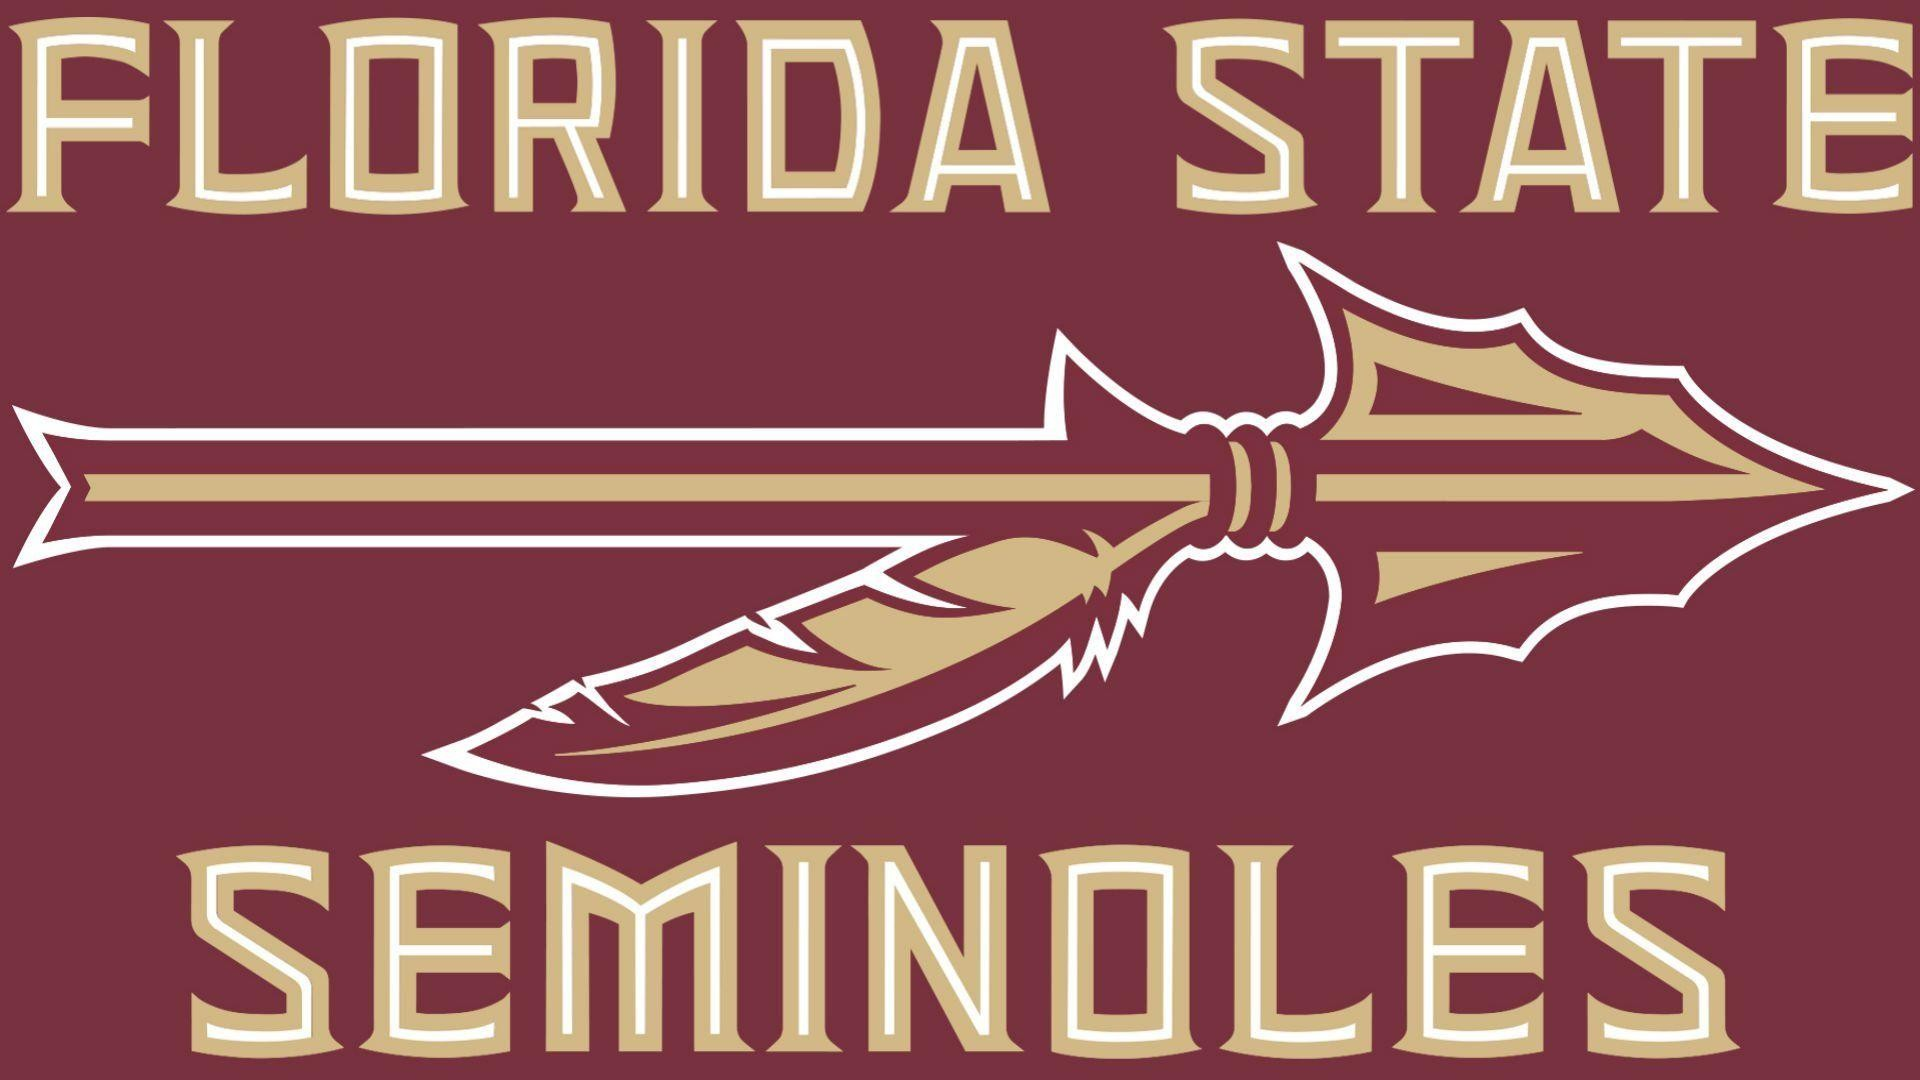 Florida State University Wallpapers 69 Pictures